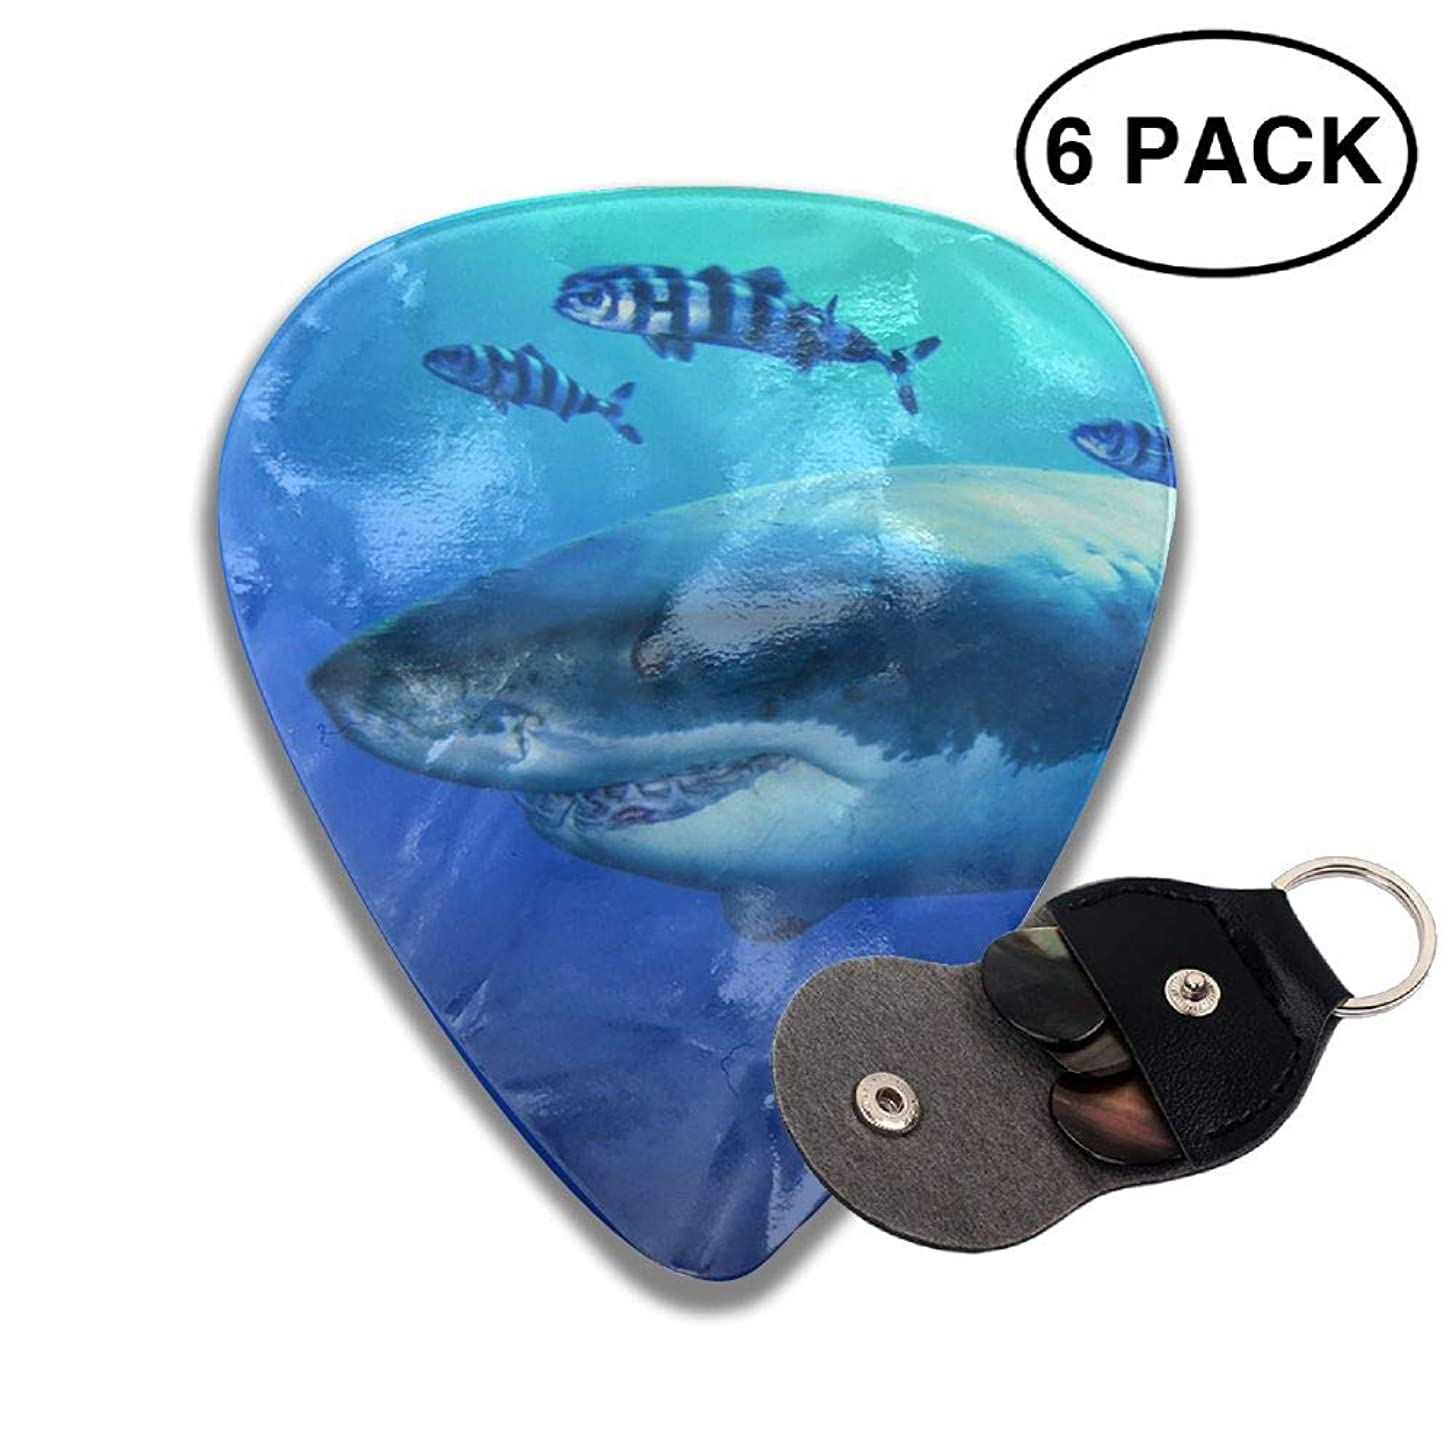 CUTEDWARF 6 Pieces of Personalized Guitar Picks Shark Bites The Ocean Print